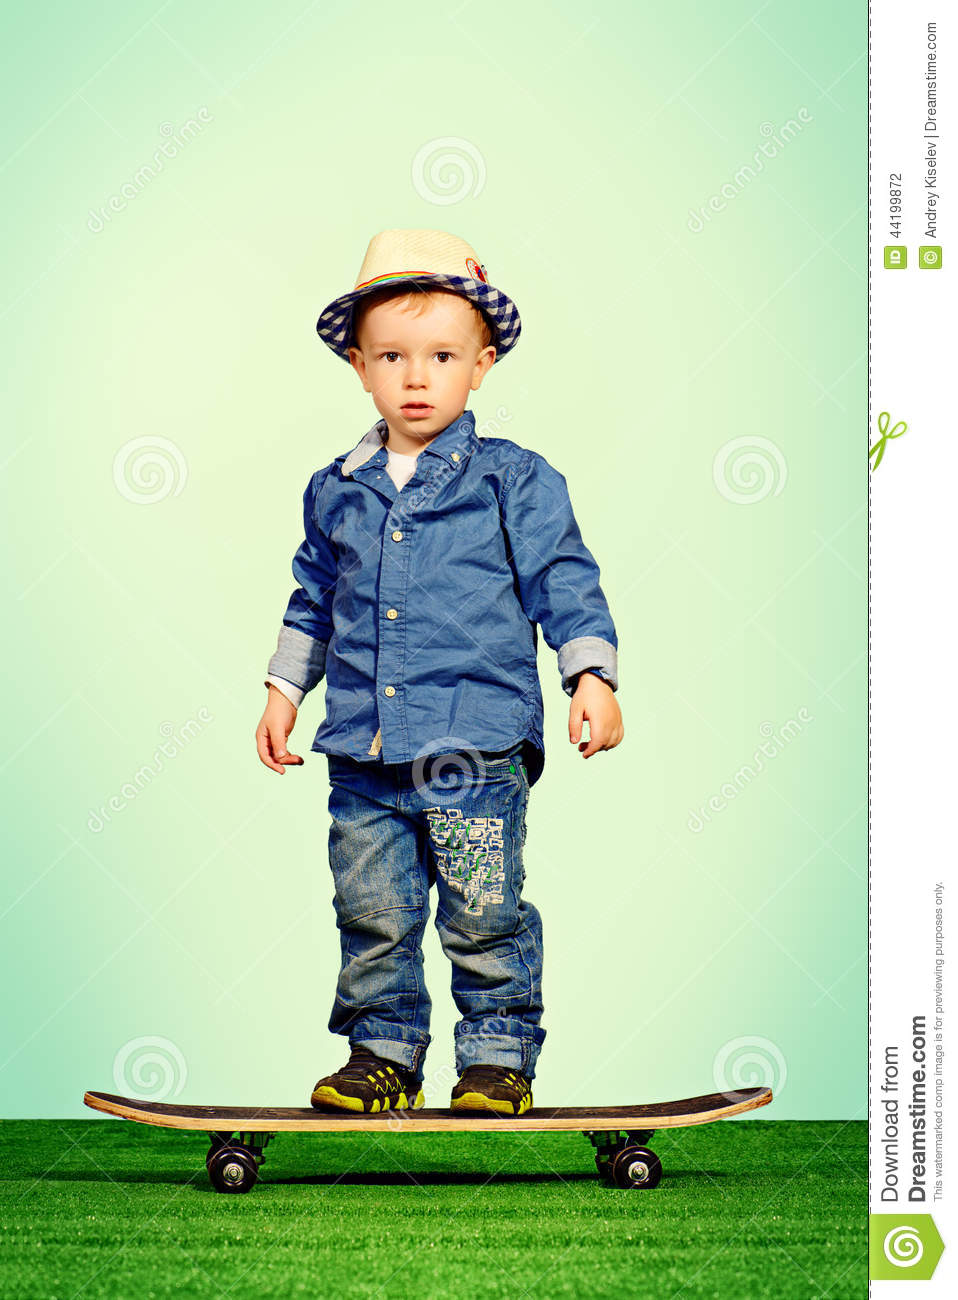 Preschooler Stock Photo - Image: 44199872